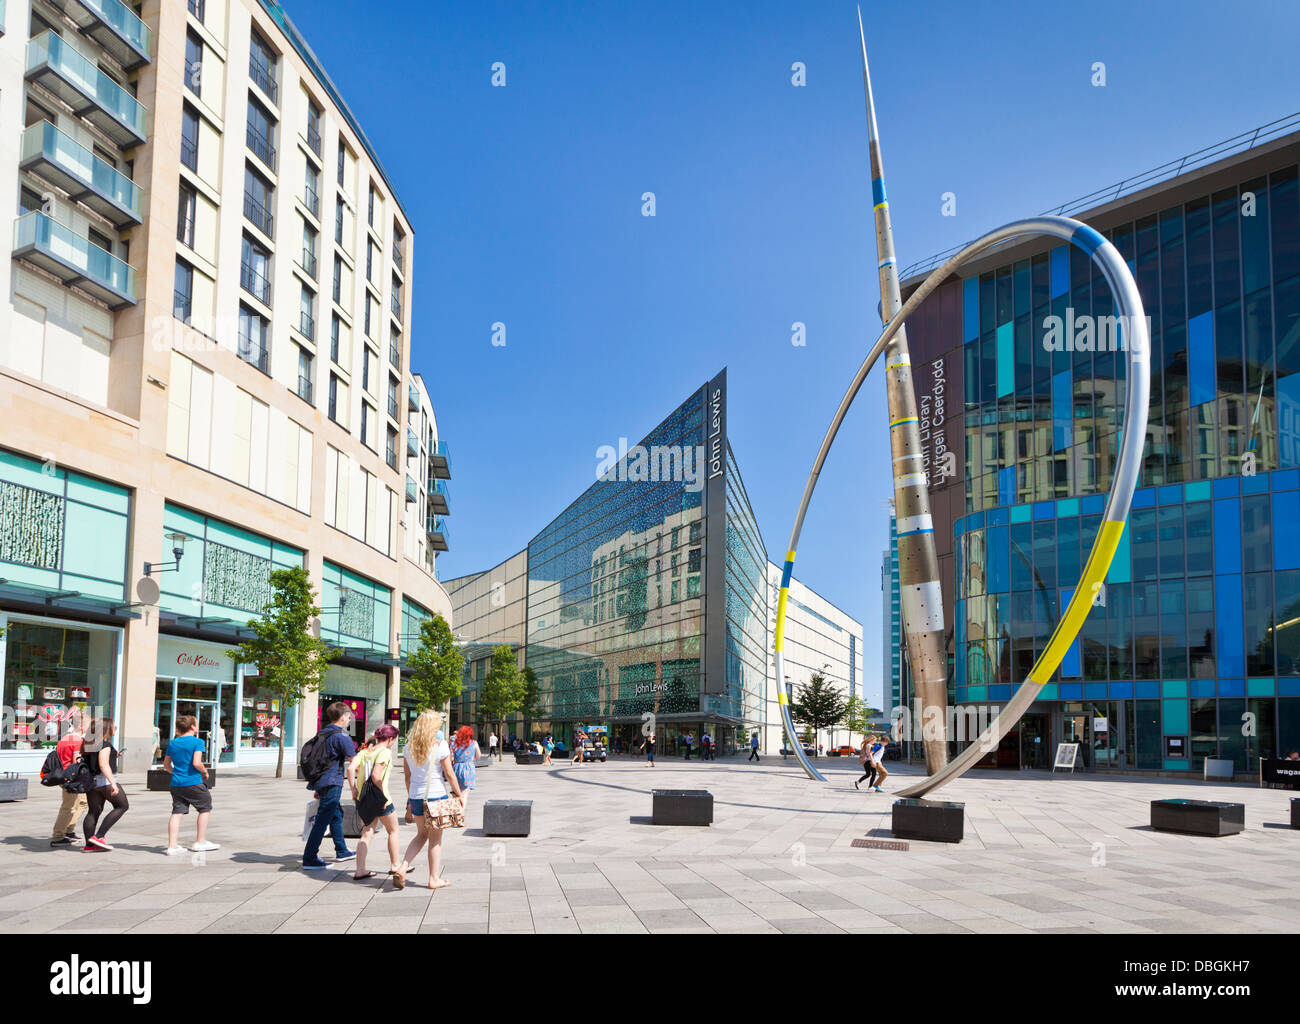 Cardiff city centre, The Hayes Pedestrian area in front of the John Lewis Store, South Glamorgan South Wales UK - Stock Image